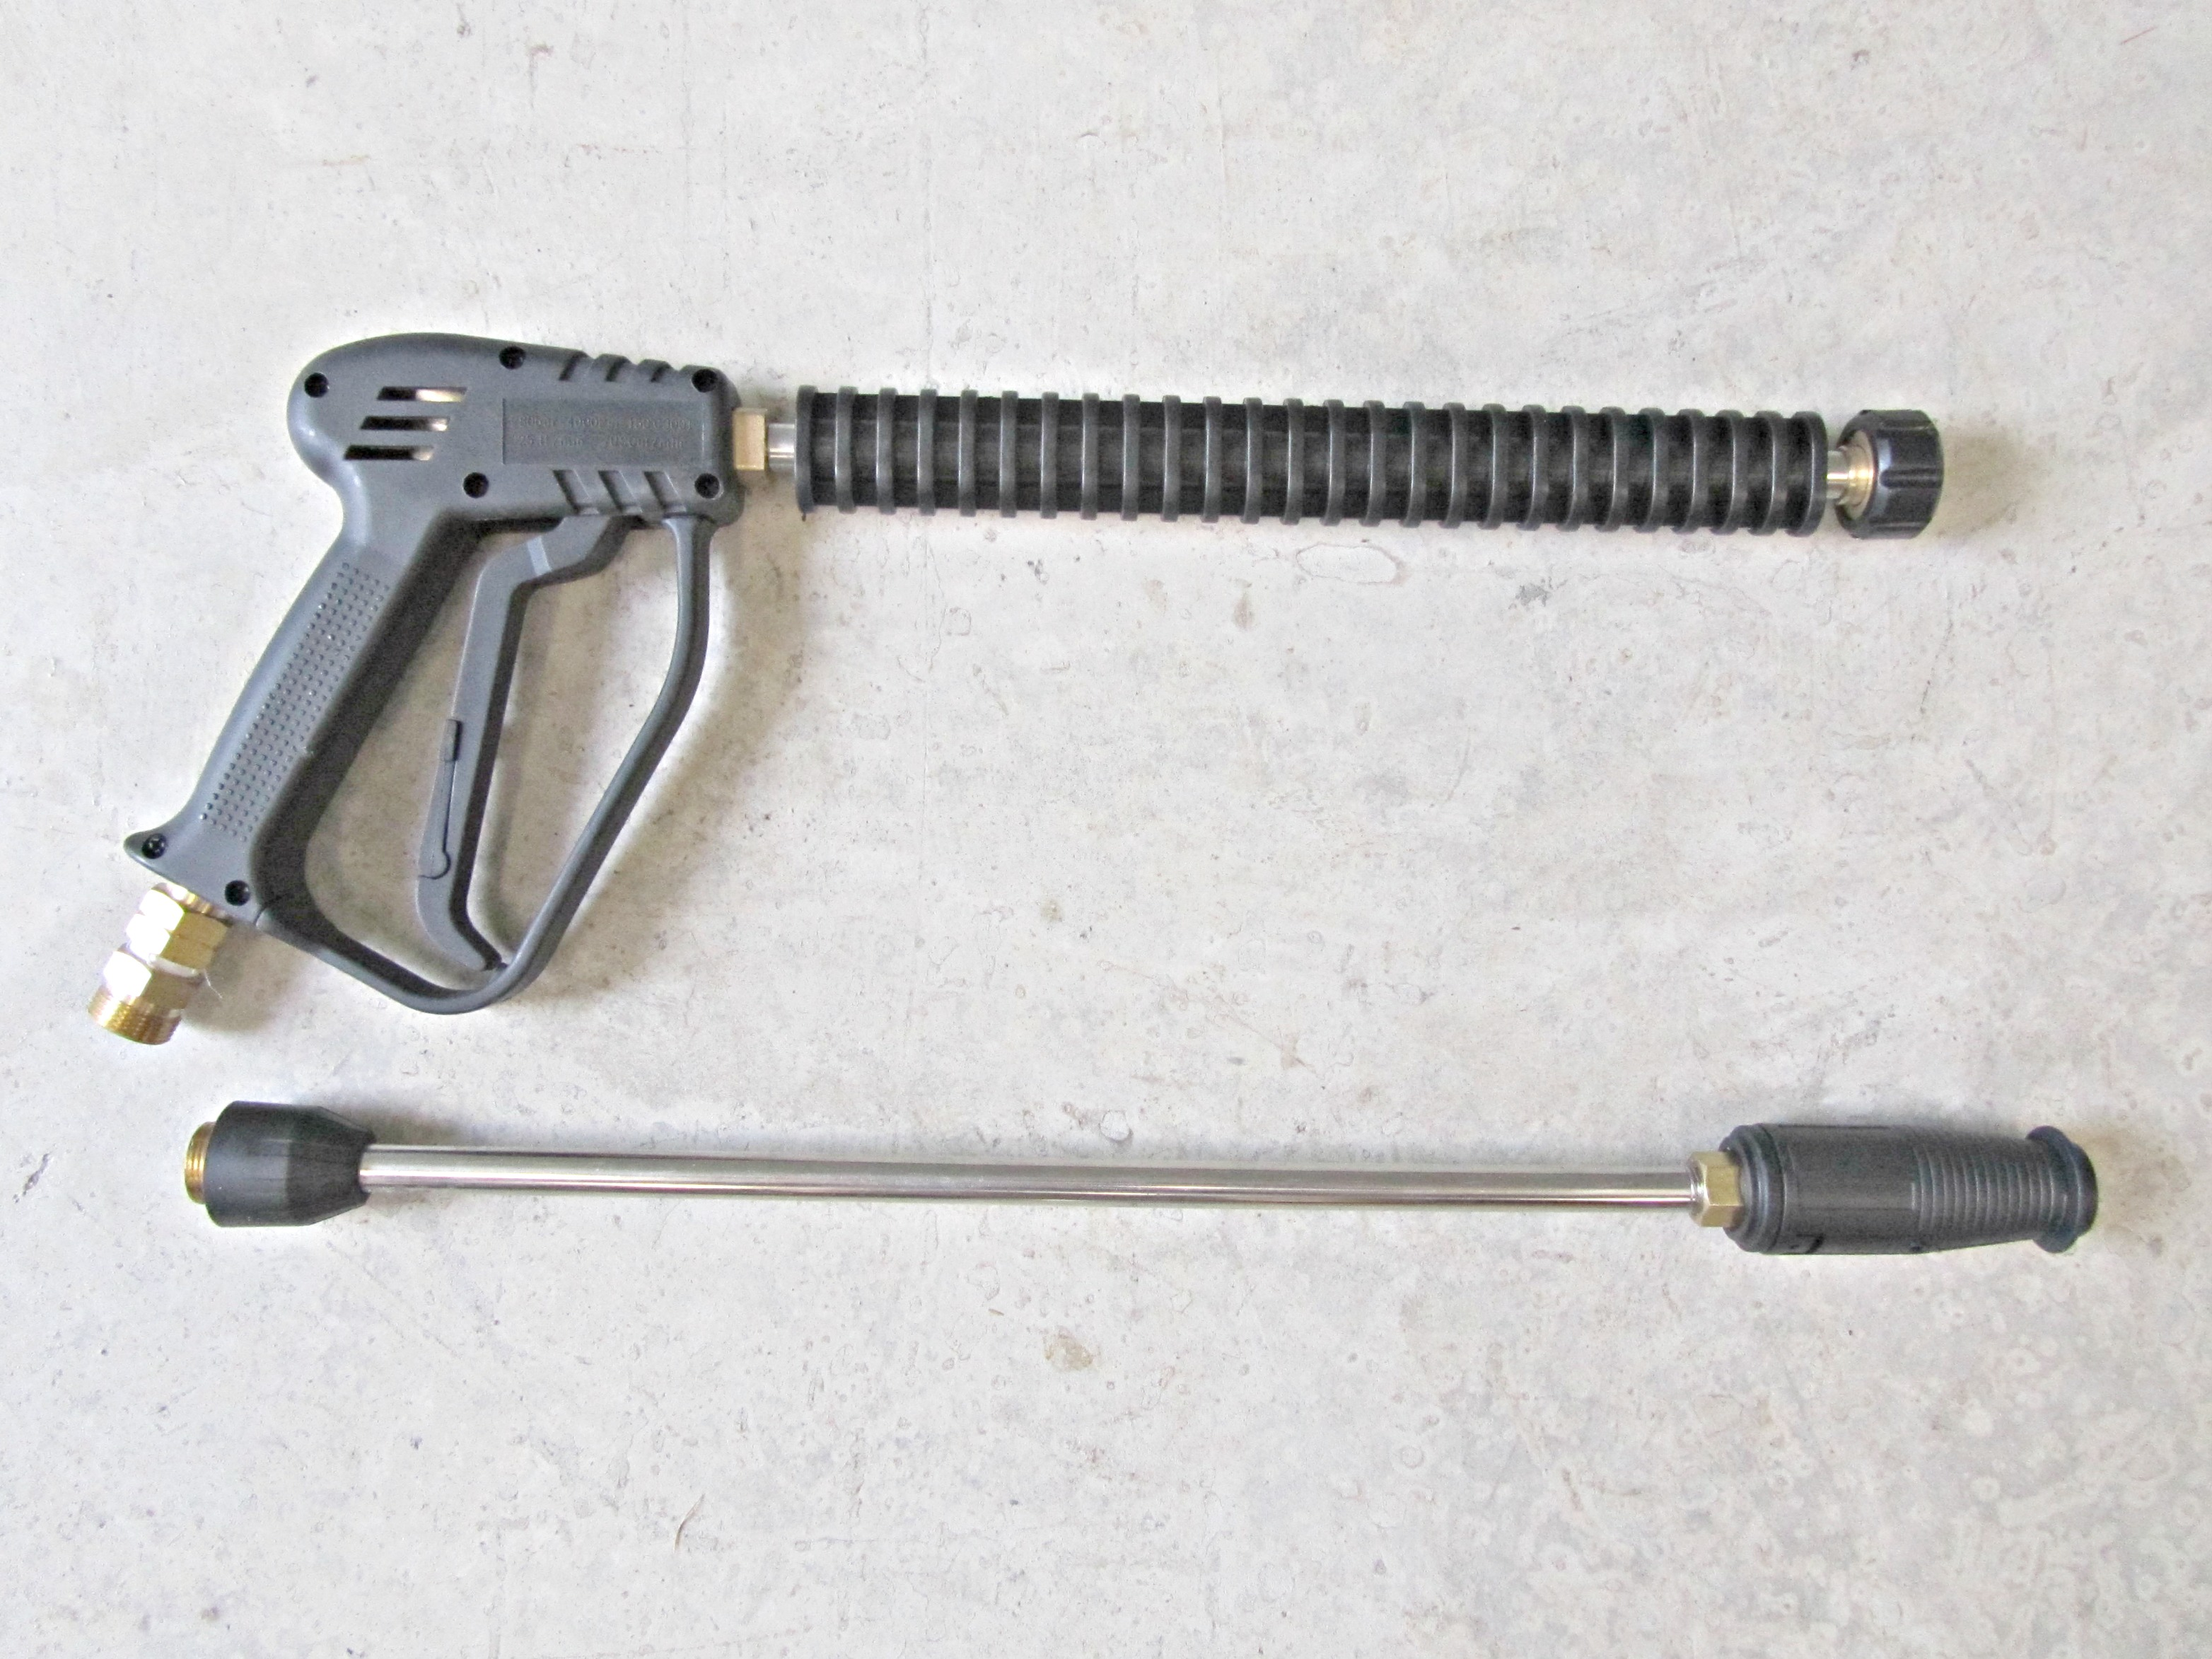 280 Bar Gun & Lance With Adjustable Nozzle - 22mm Screw Connection Hose Fitting